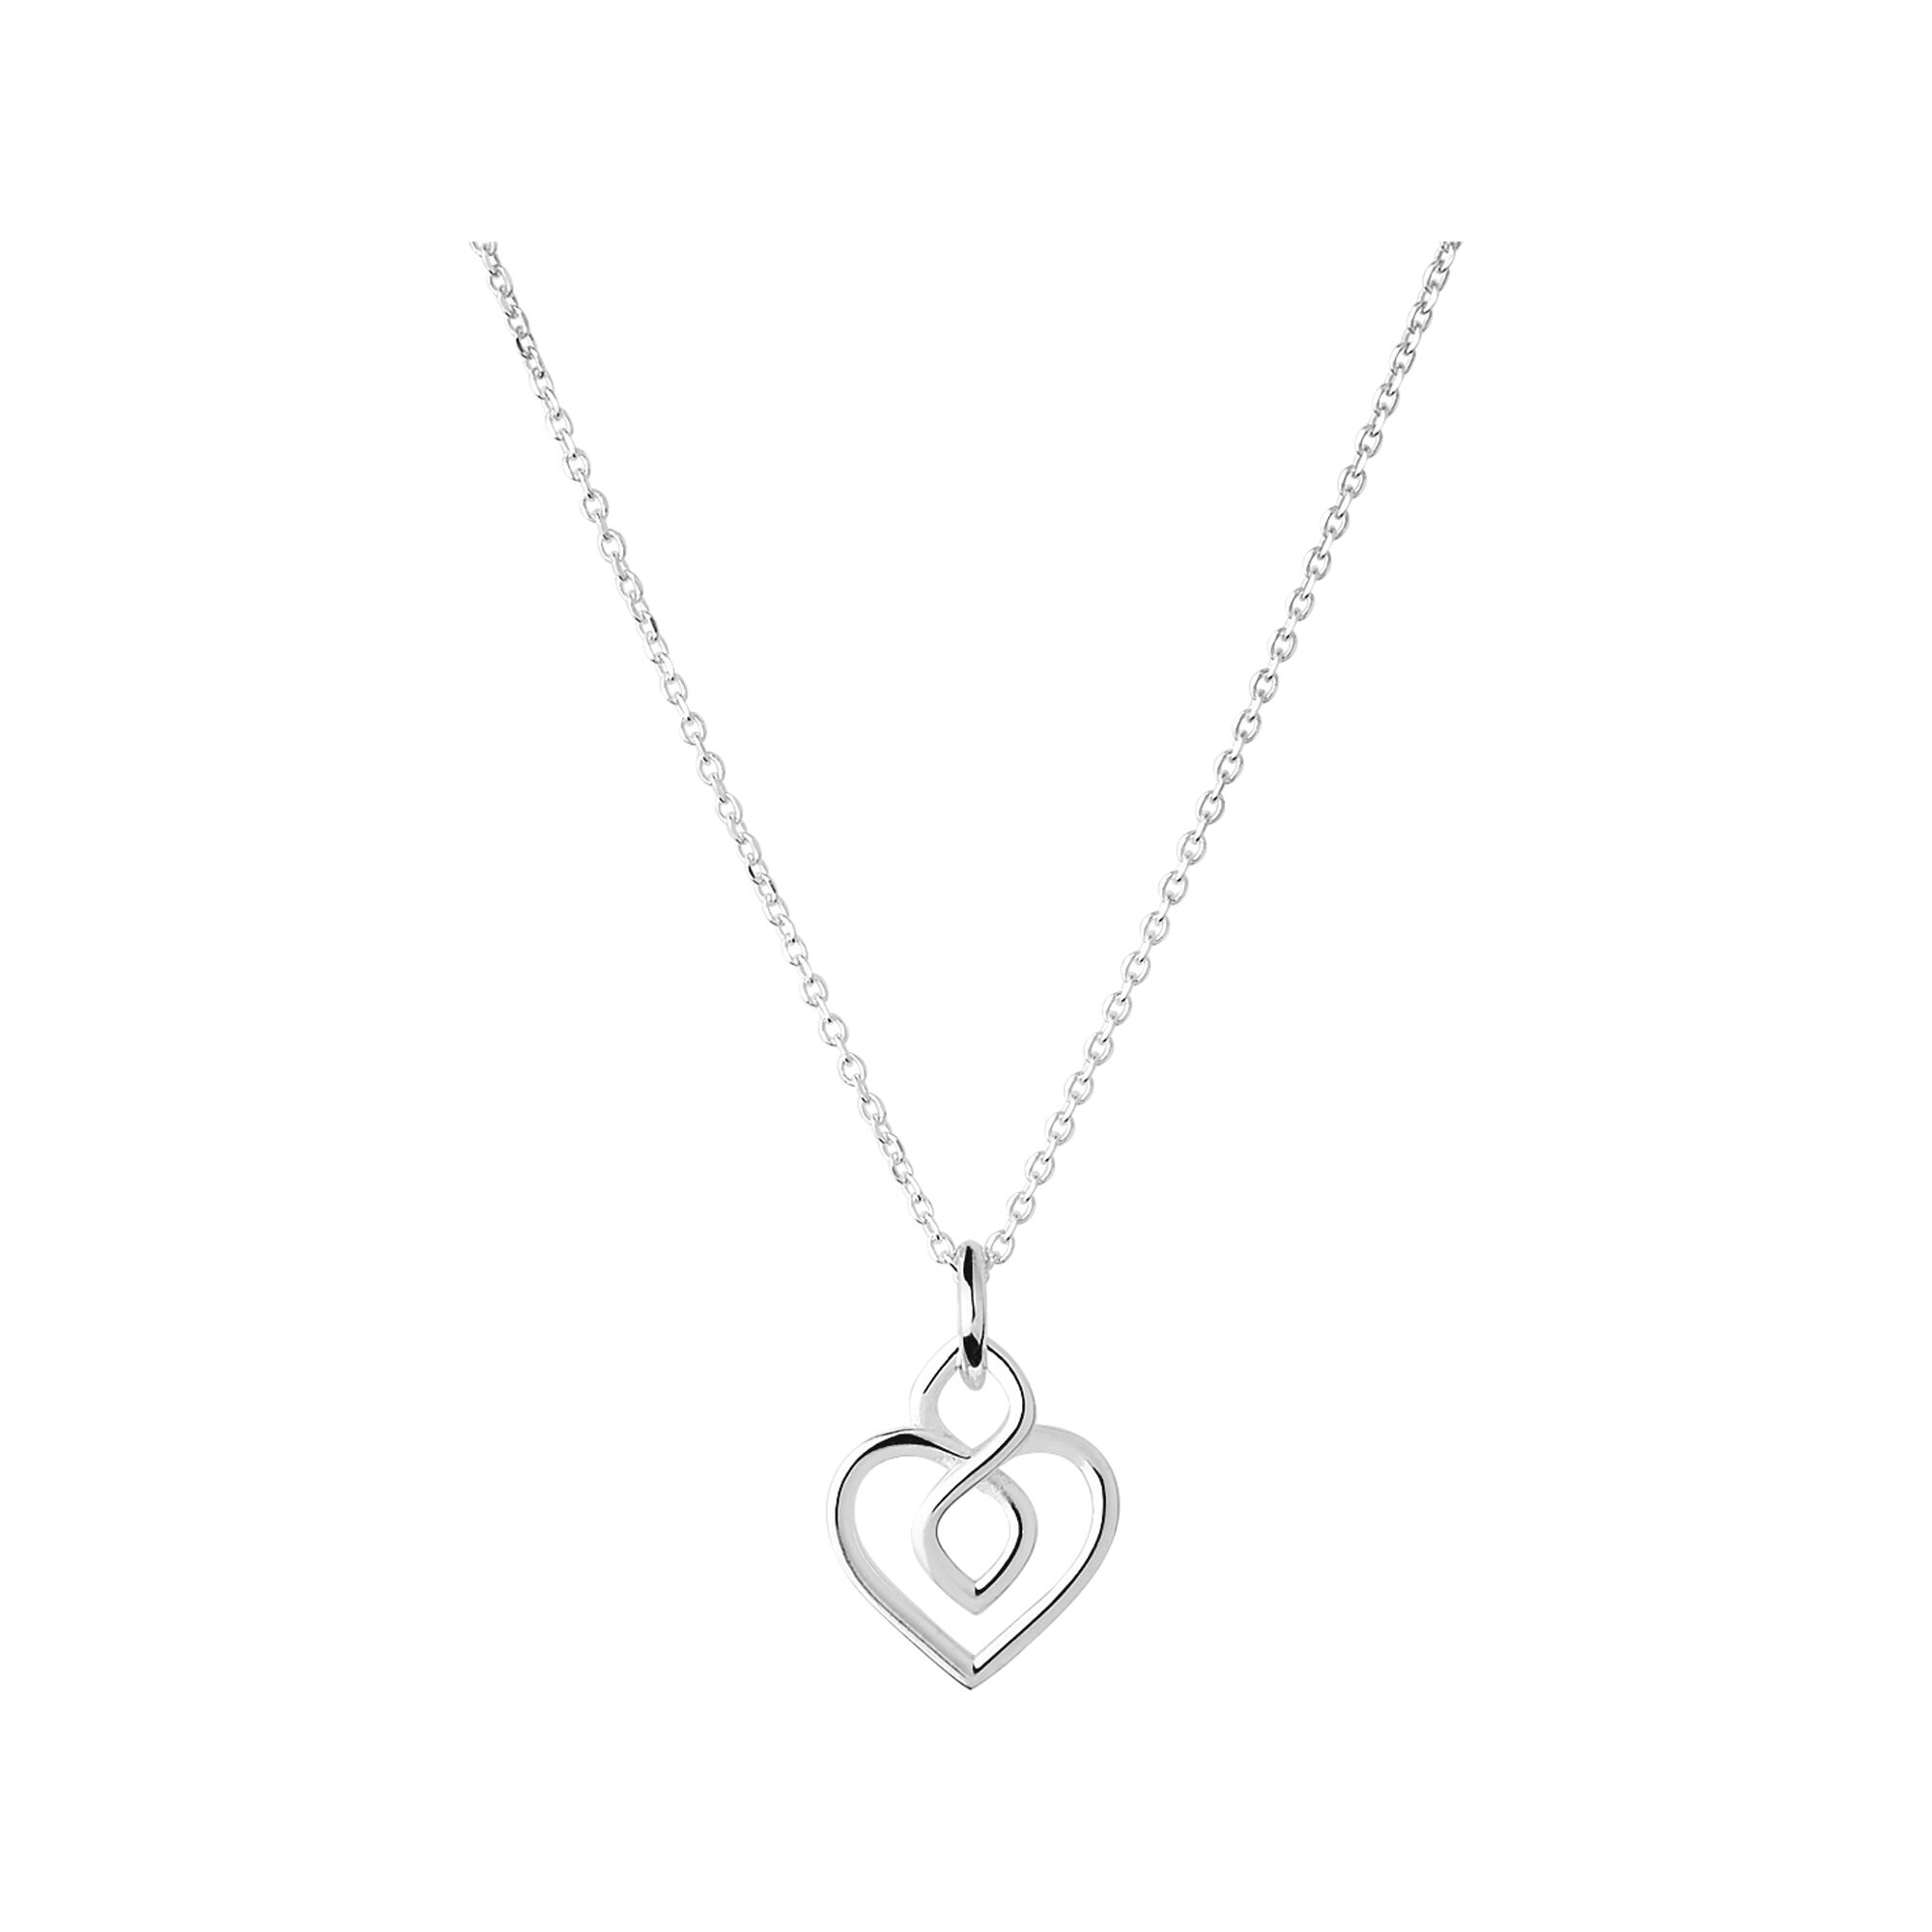 jewellery heart b women cubic love itm sterling zirconia necklace catcher jewelry silver